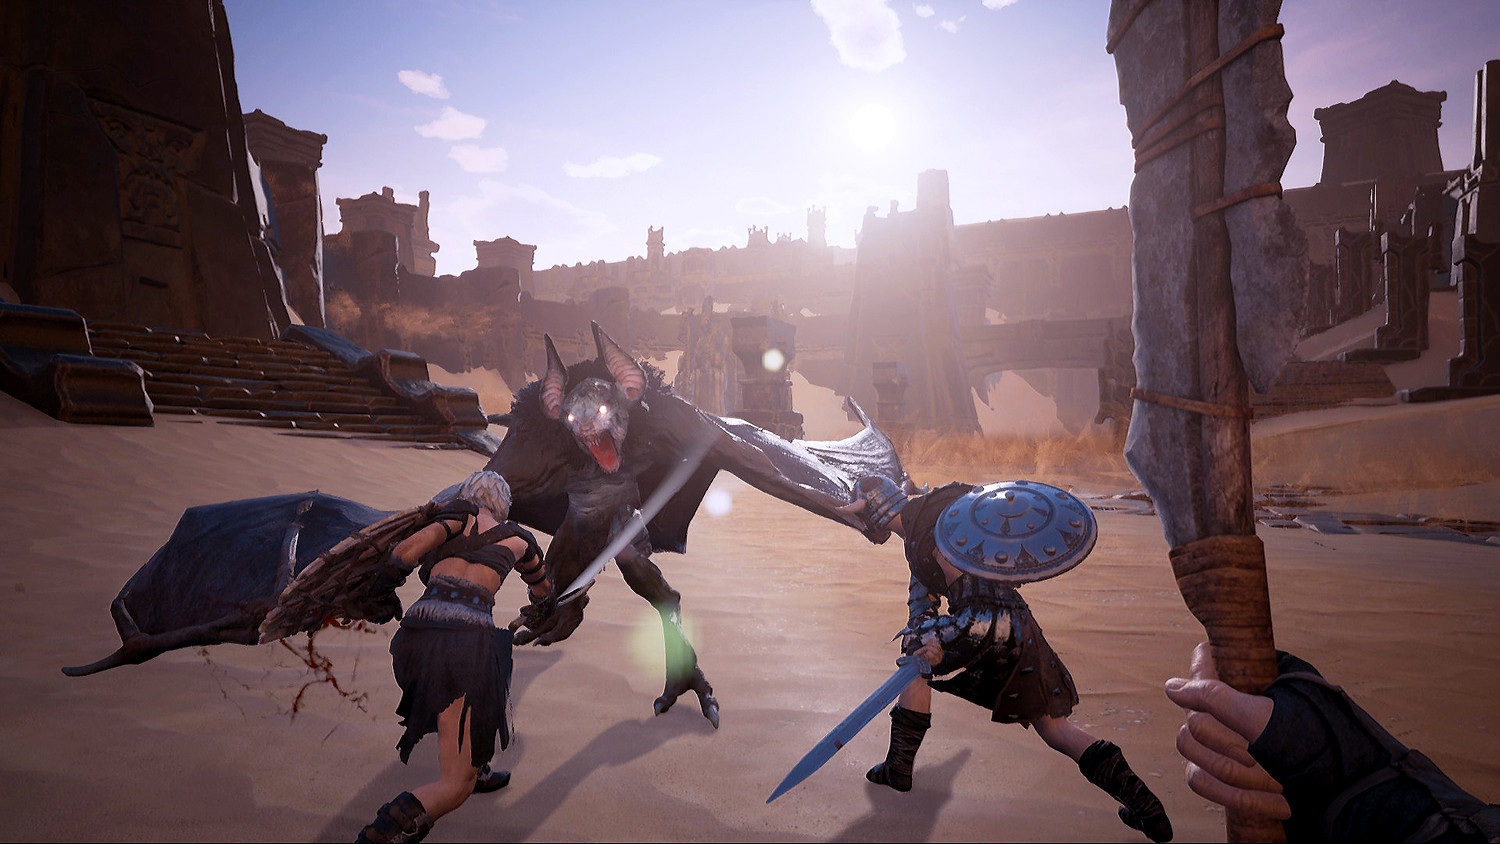 Conan Exiles: Cocks out for Crom - The Something Awful Forums